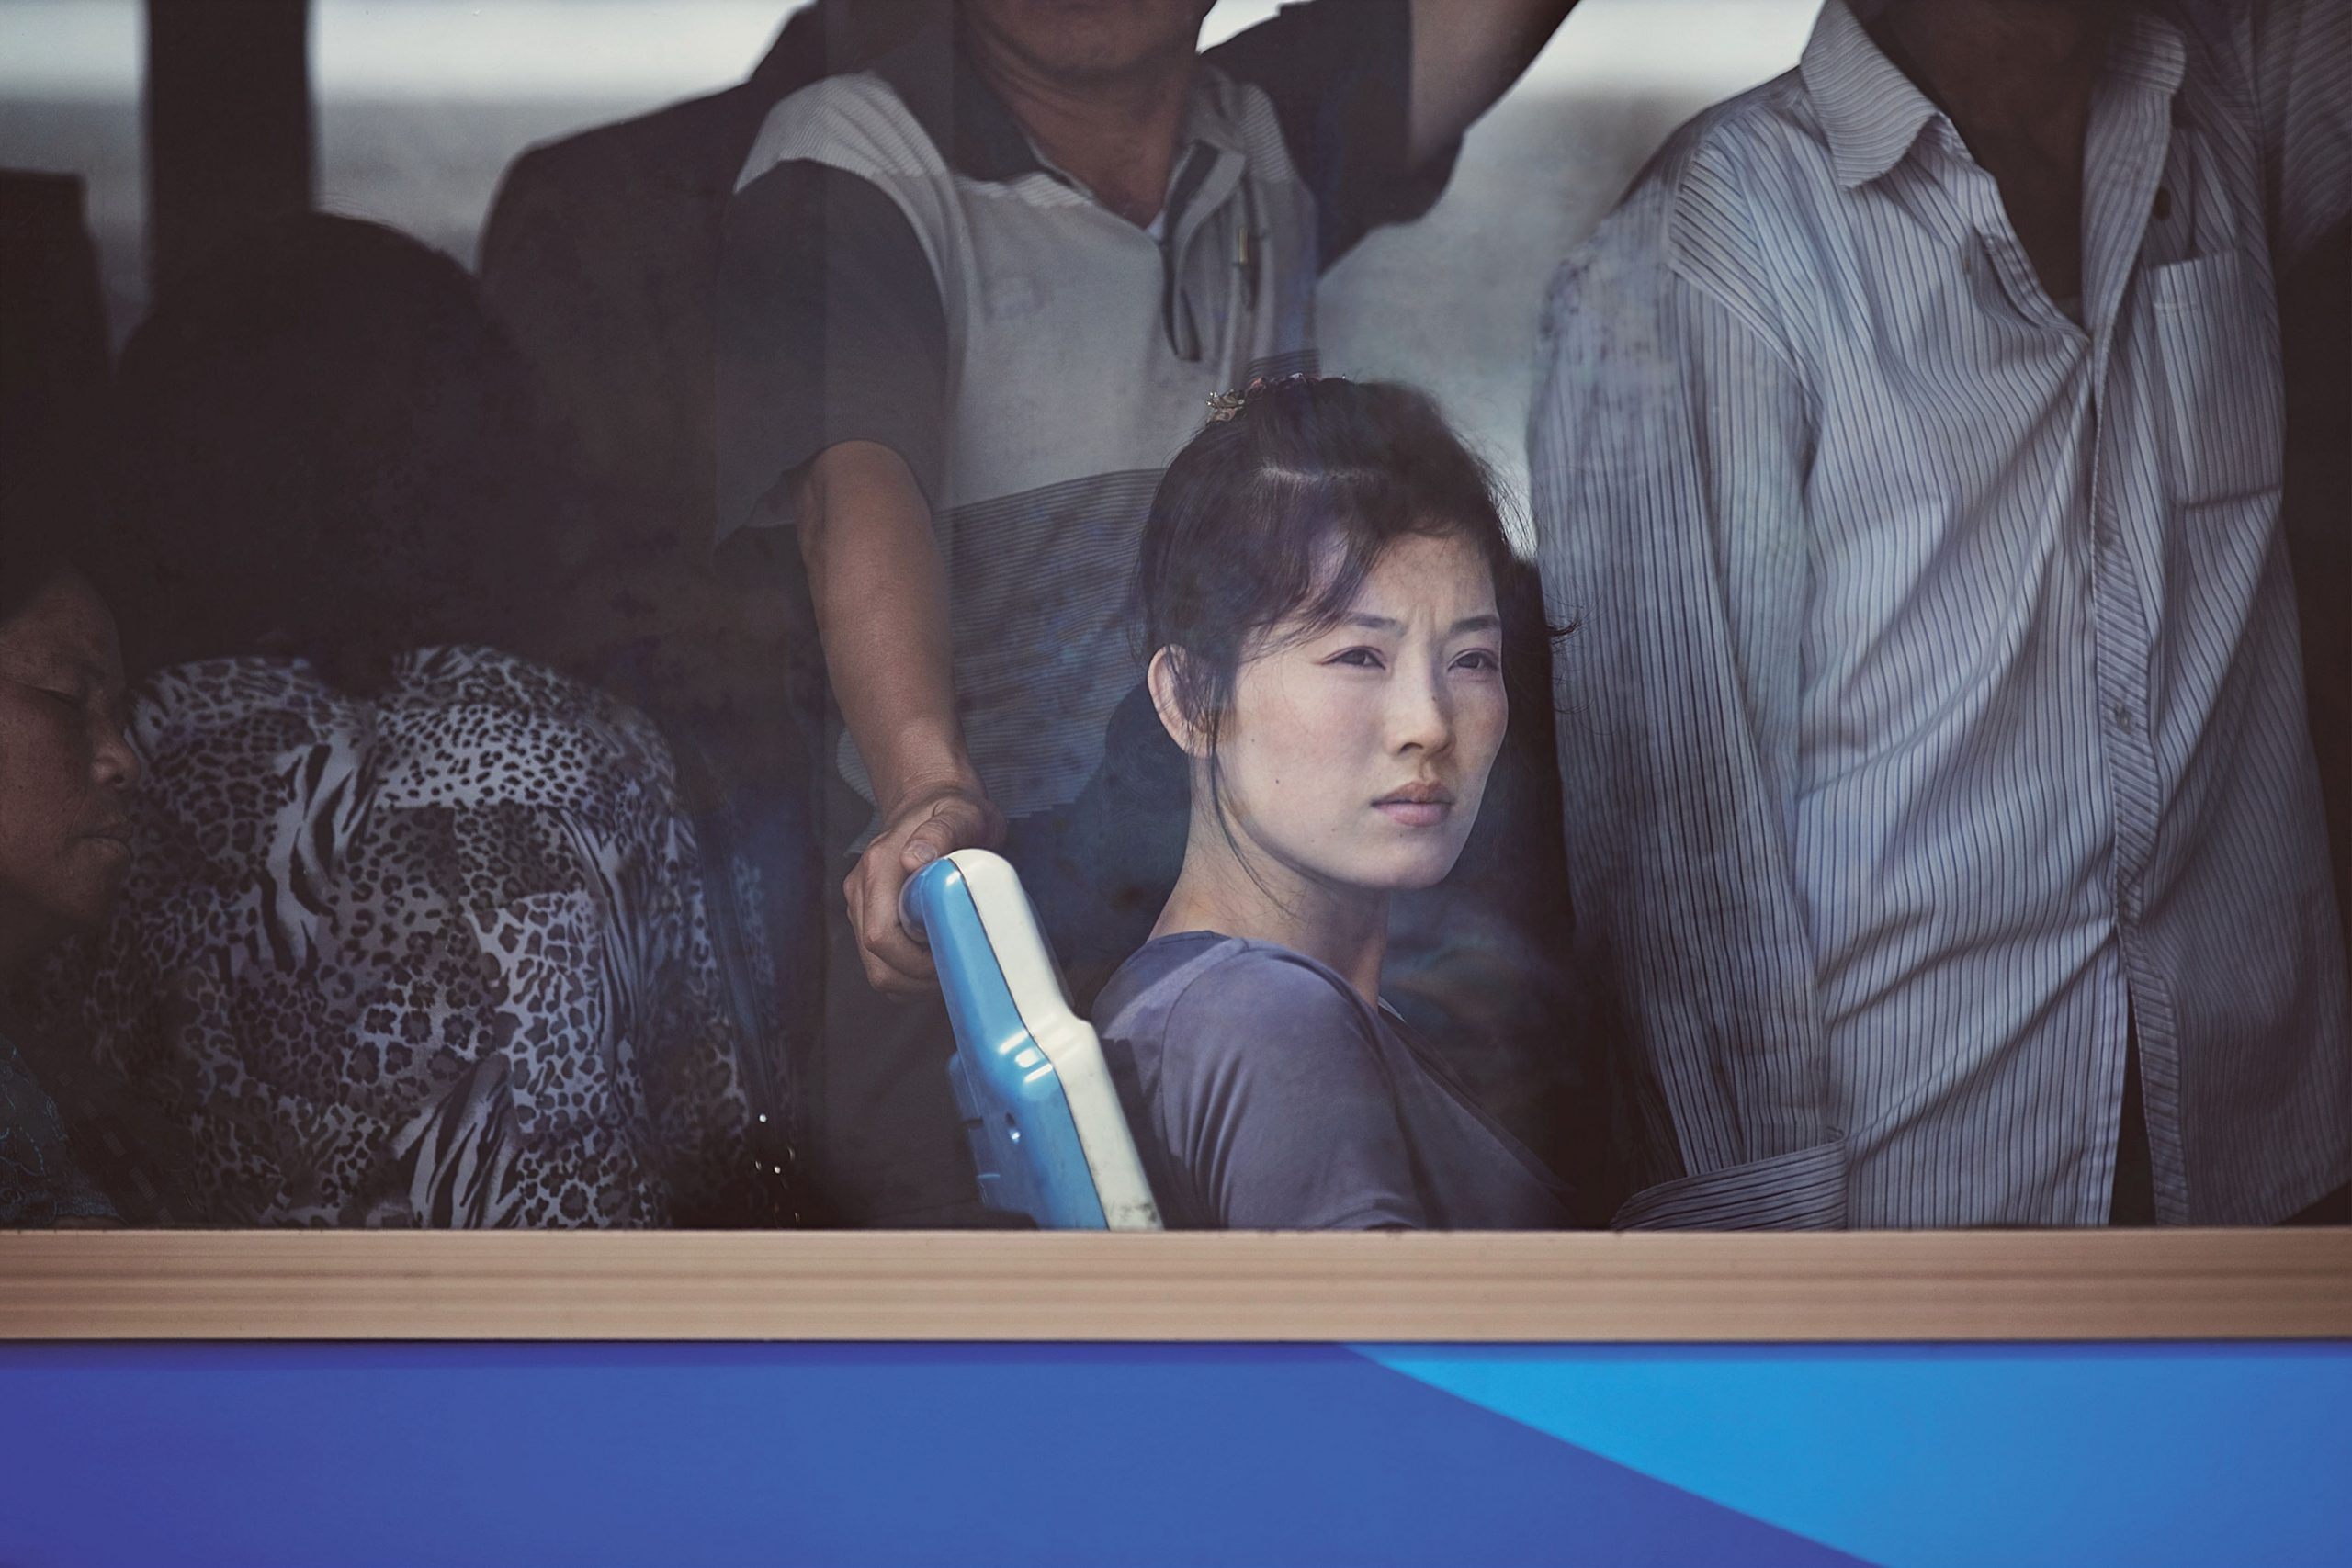 Xiomara Bender's 2015 photo 'Woman on a bus at a Bus  stop at Kim Il Sung Square